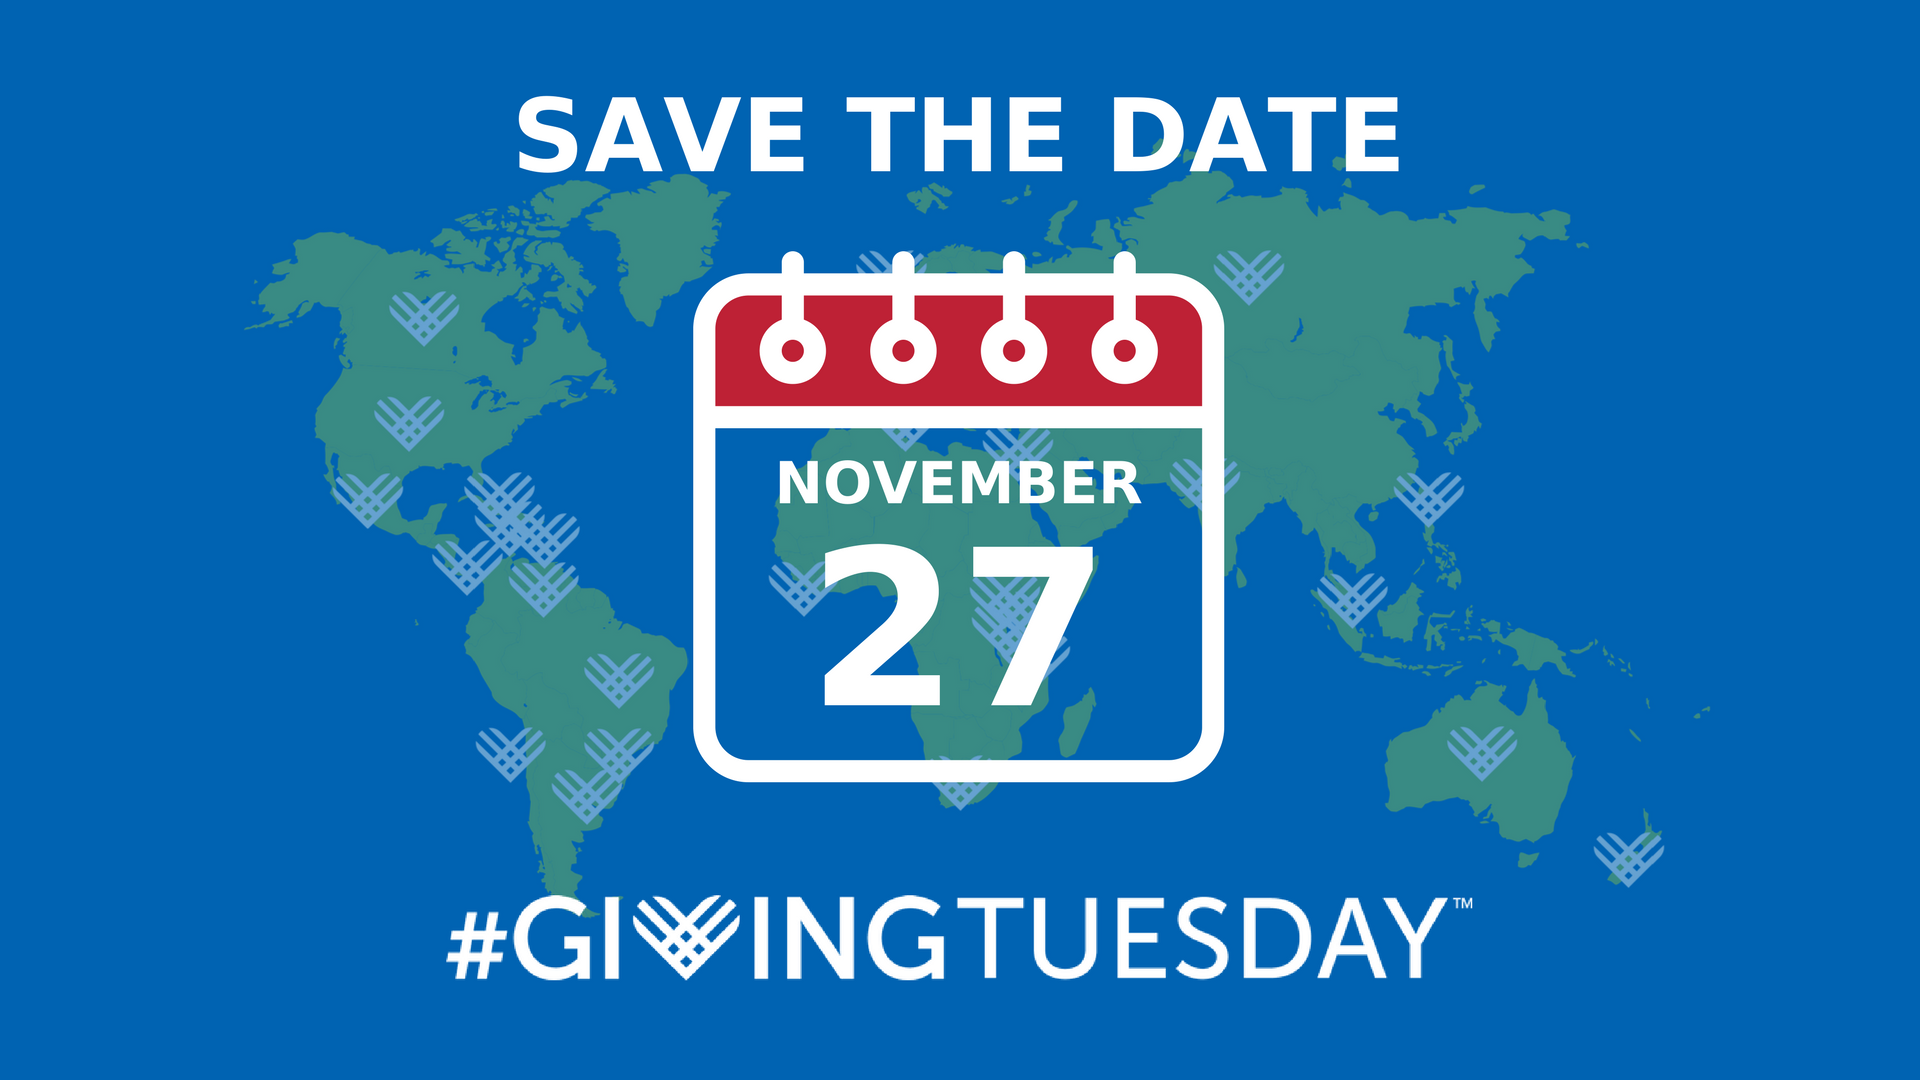 #GivingTuesday 2018 save-the-date